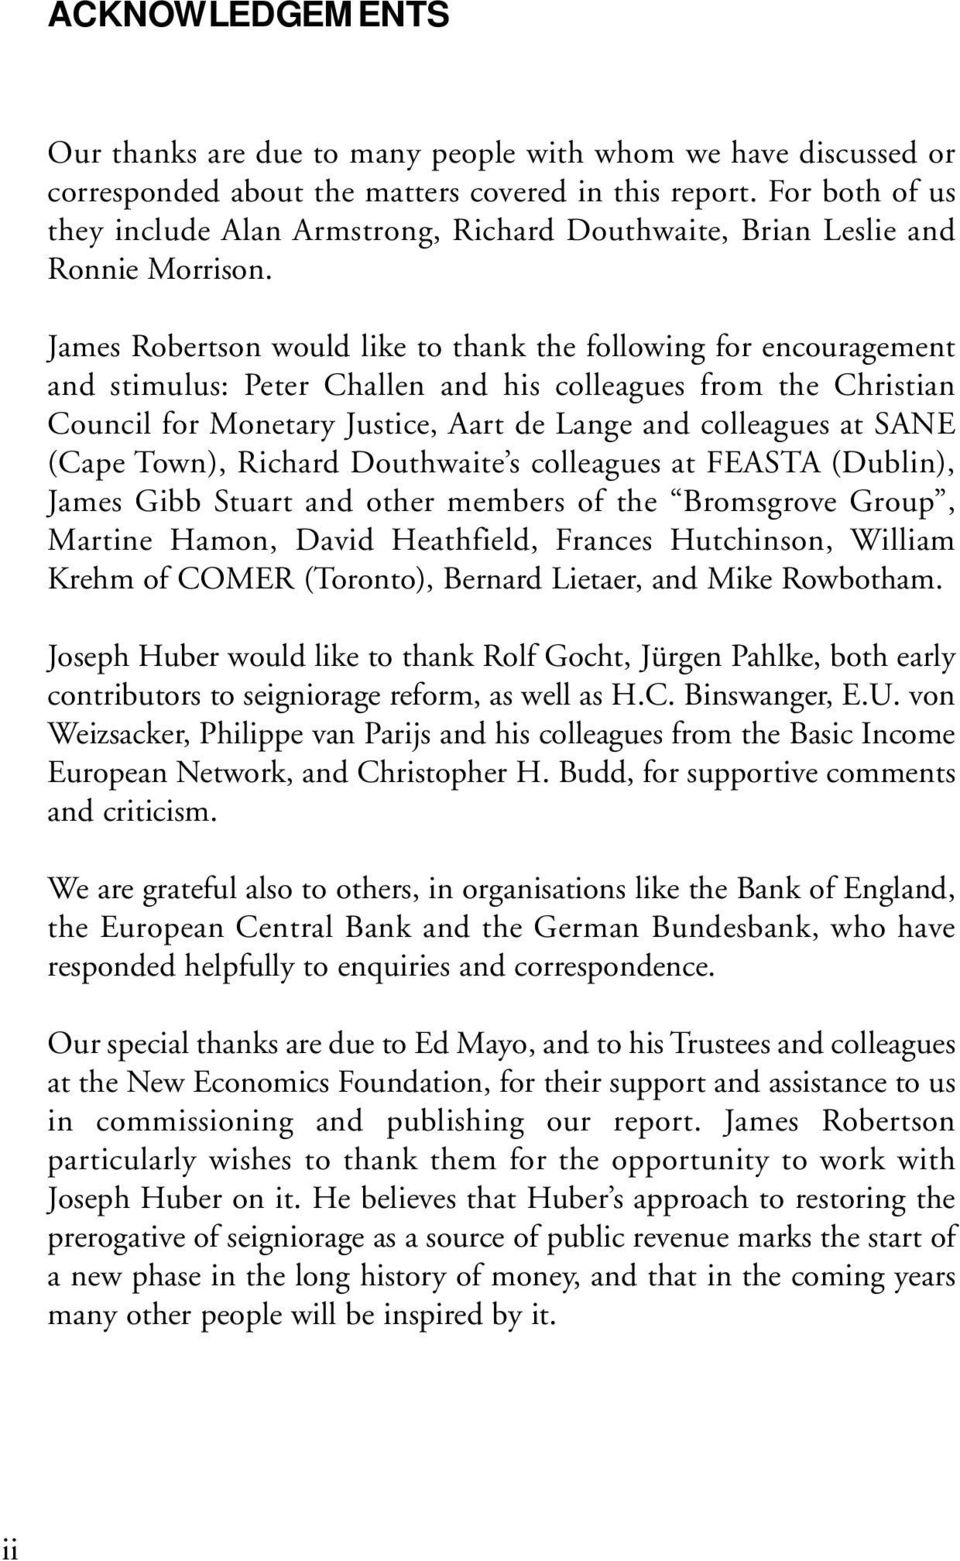 James Robertson would like to thank the following for encouragement and stimulus: Peter Challen and his colleagues from the Christian Council for Monetary Justice, Aart de Lange and colleagues at